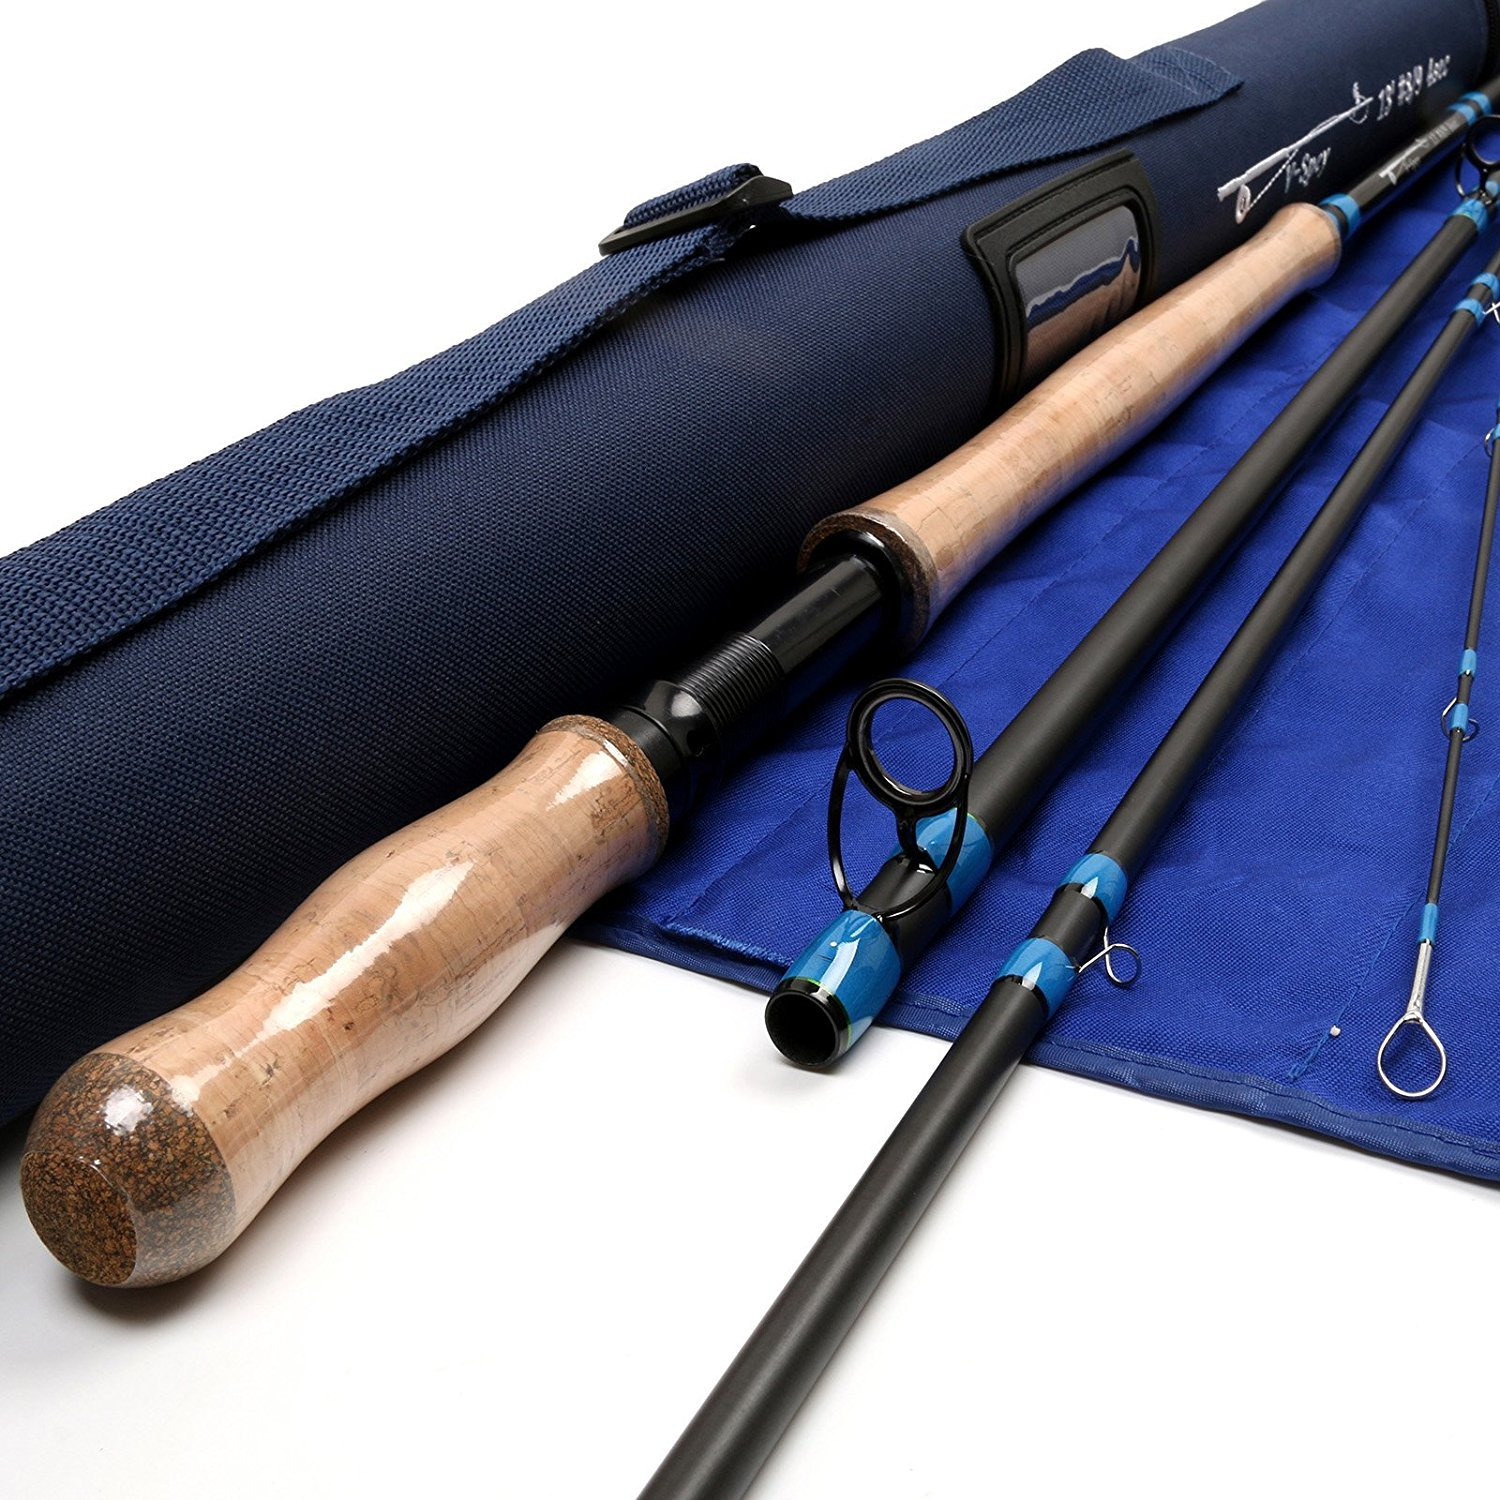 M MAXIMUMCATCH Maxcatch Spey Fly Rod 4-Piece Carbon Spey Rod Fly Fishing with Cordura Tube